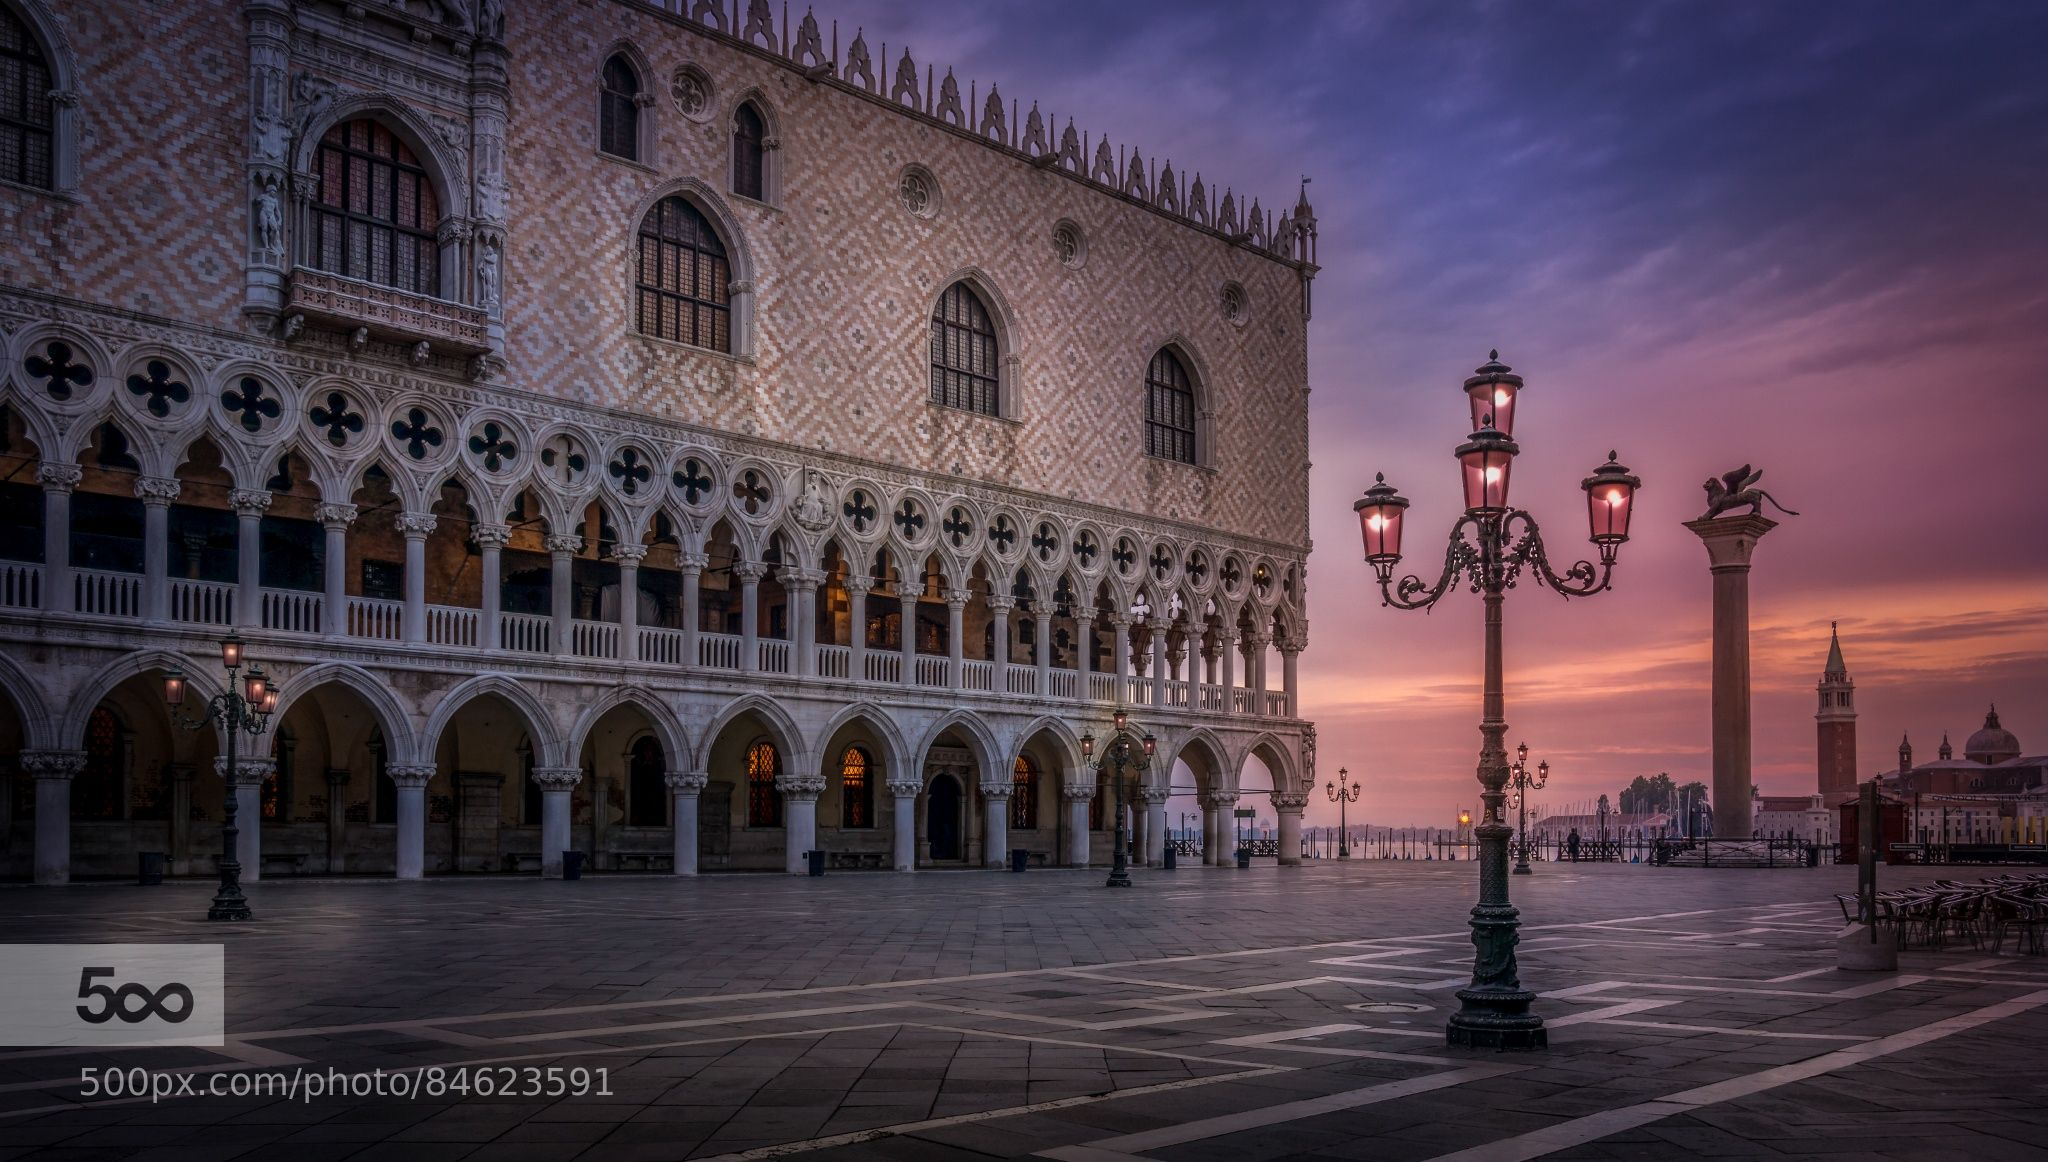 Piazza San Marco, Venice by Patrick Asselin on 500px